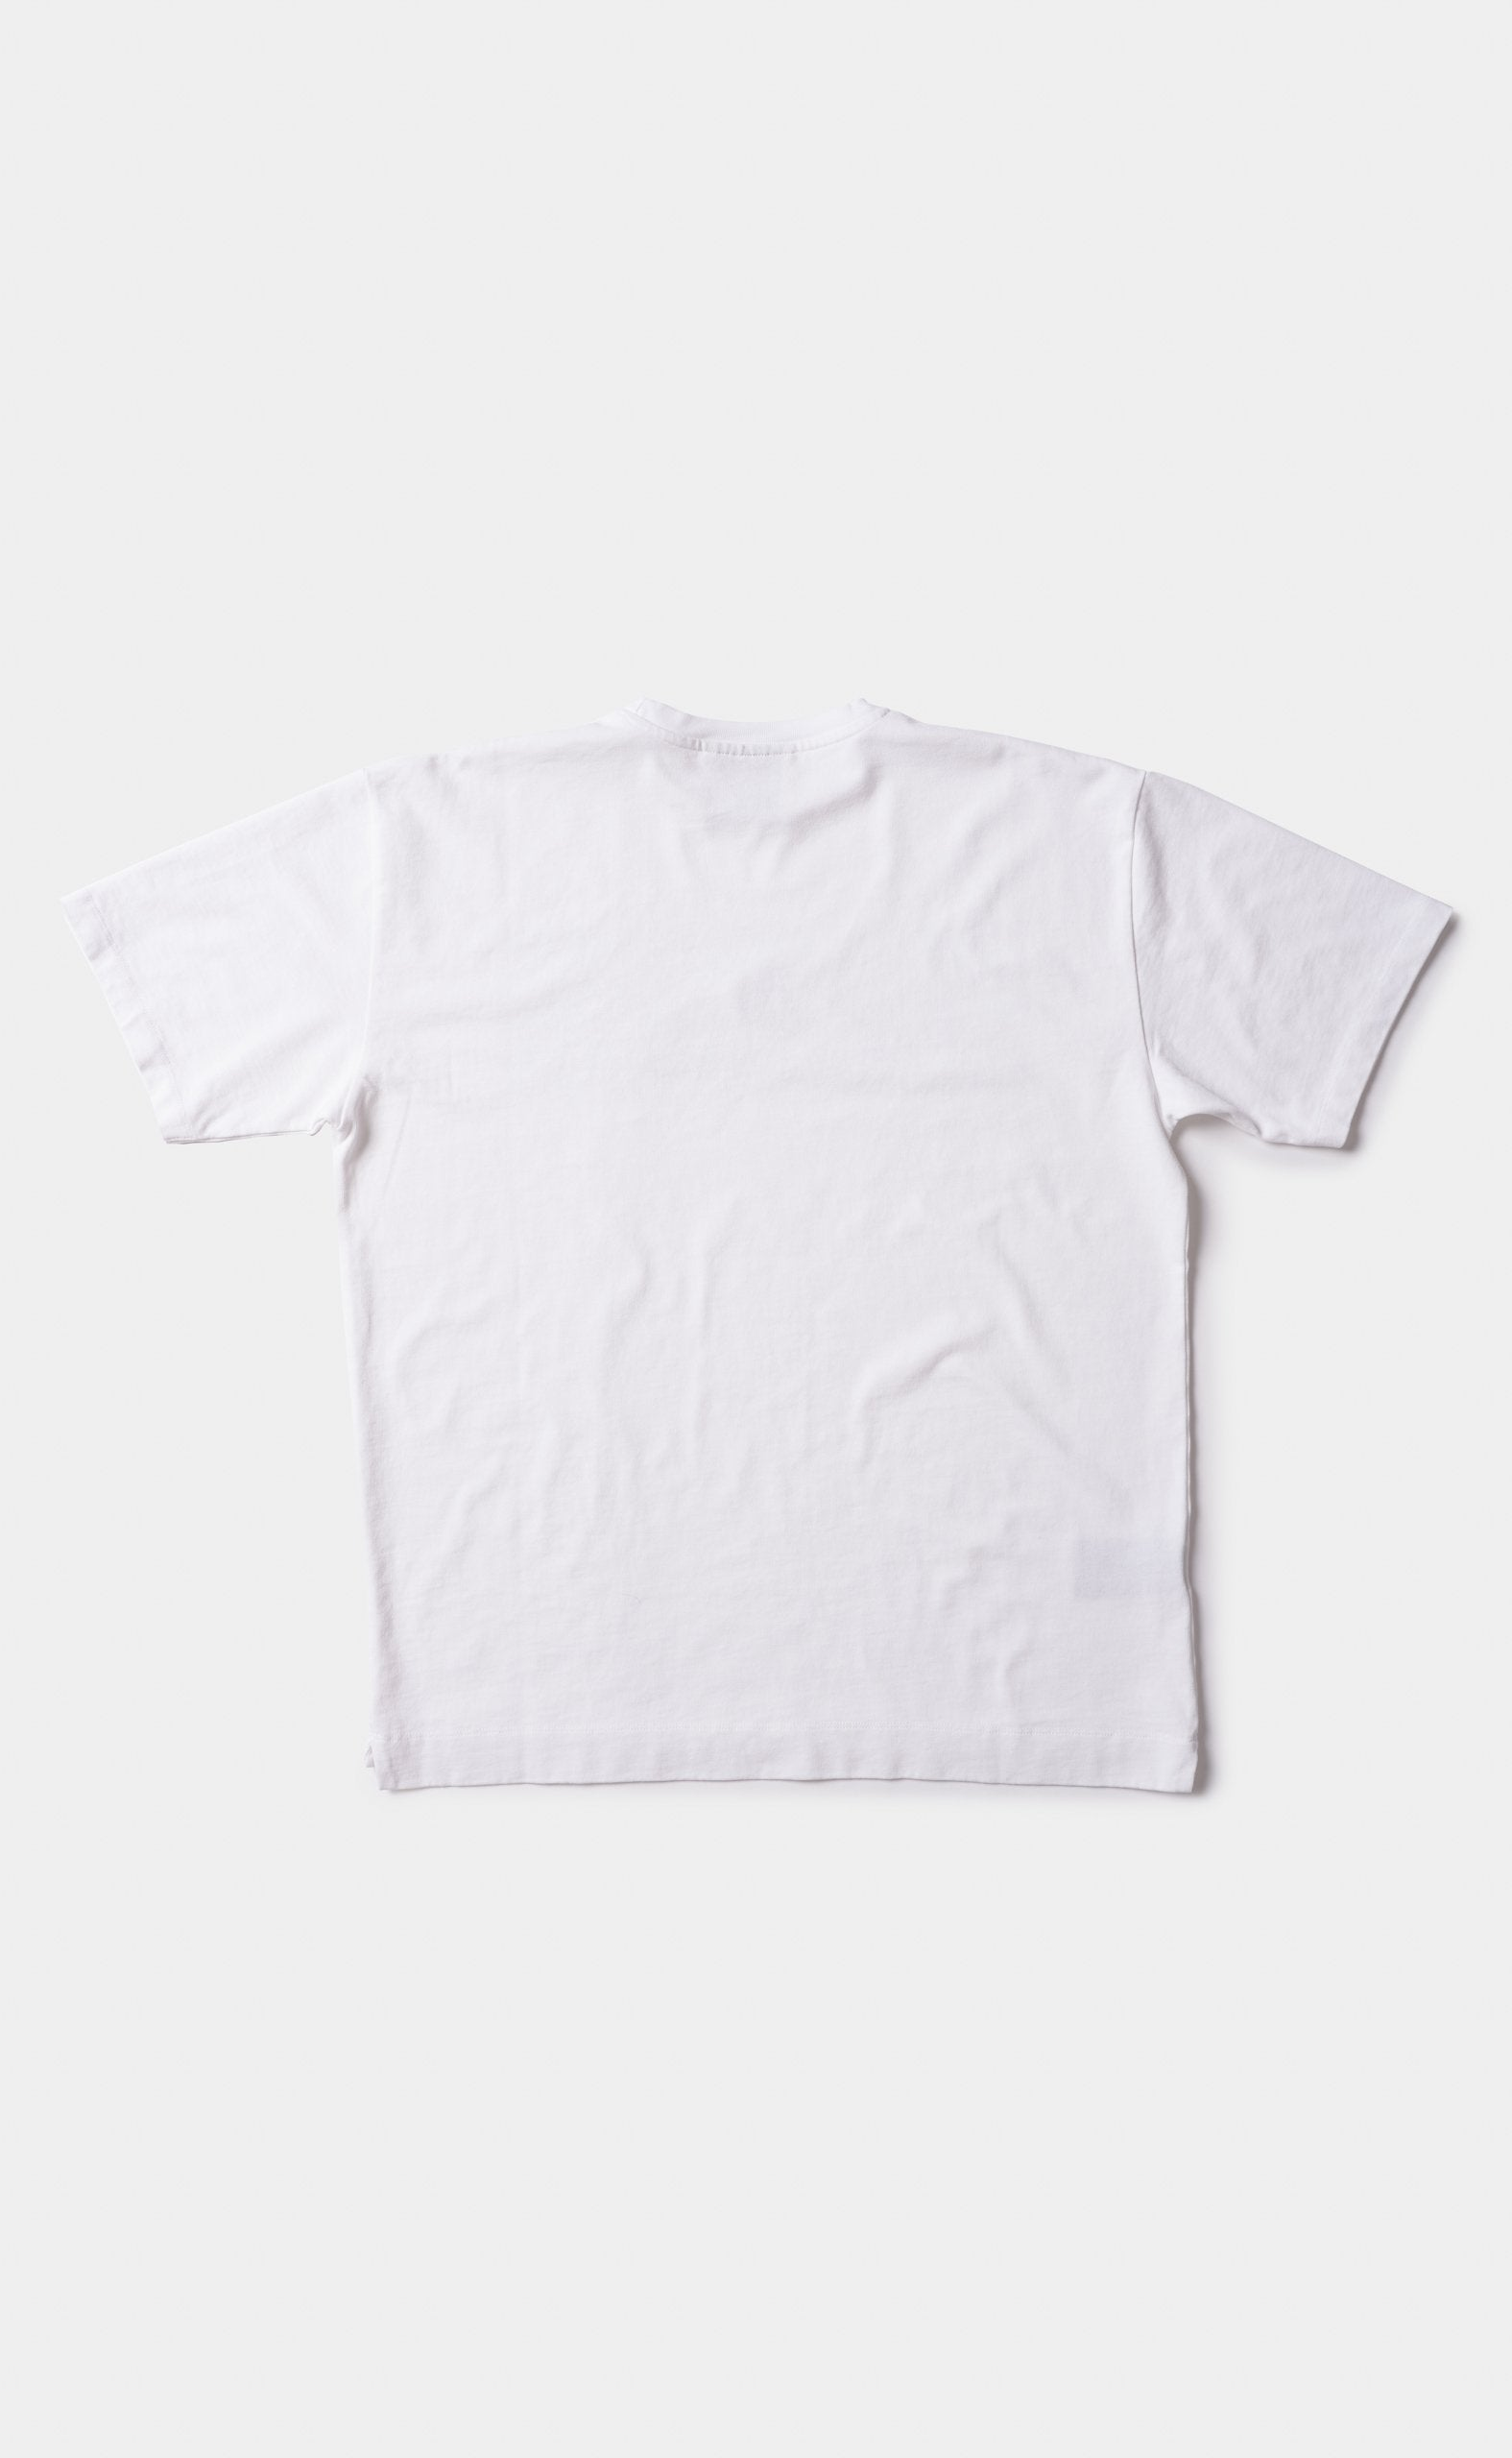 Graphic Tee White - Mountain Grid